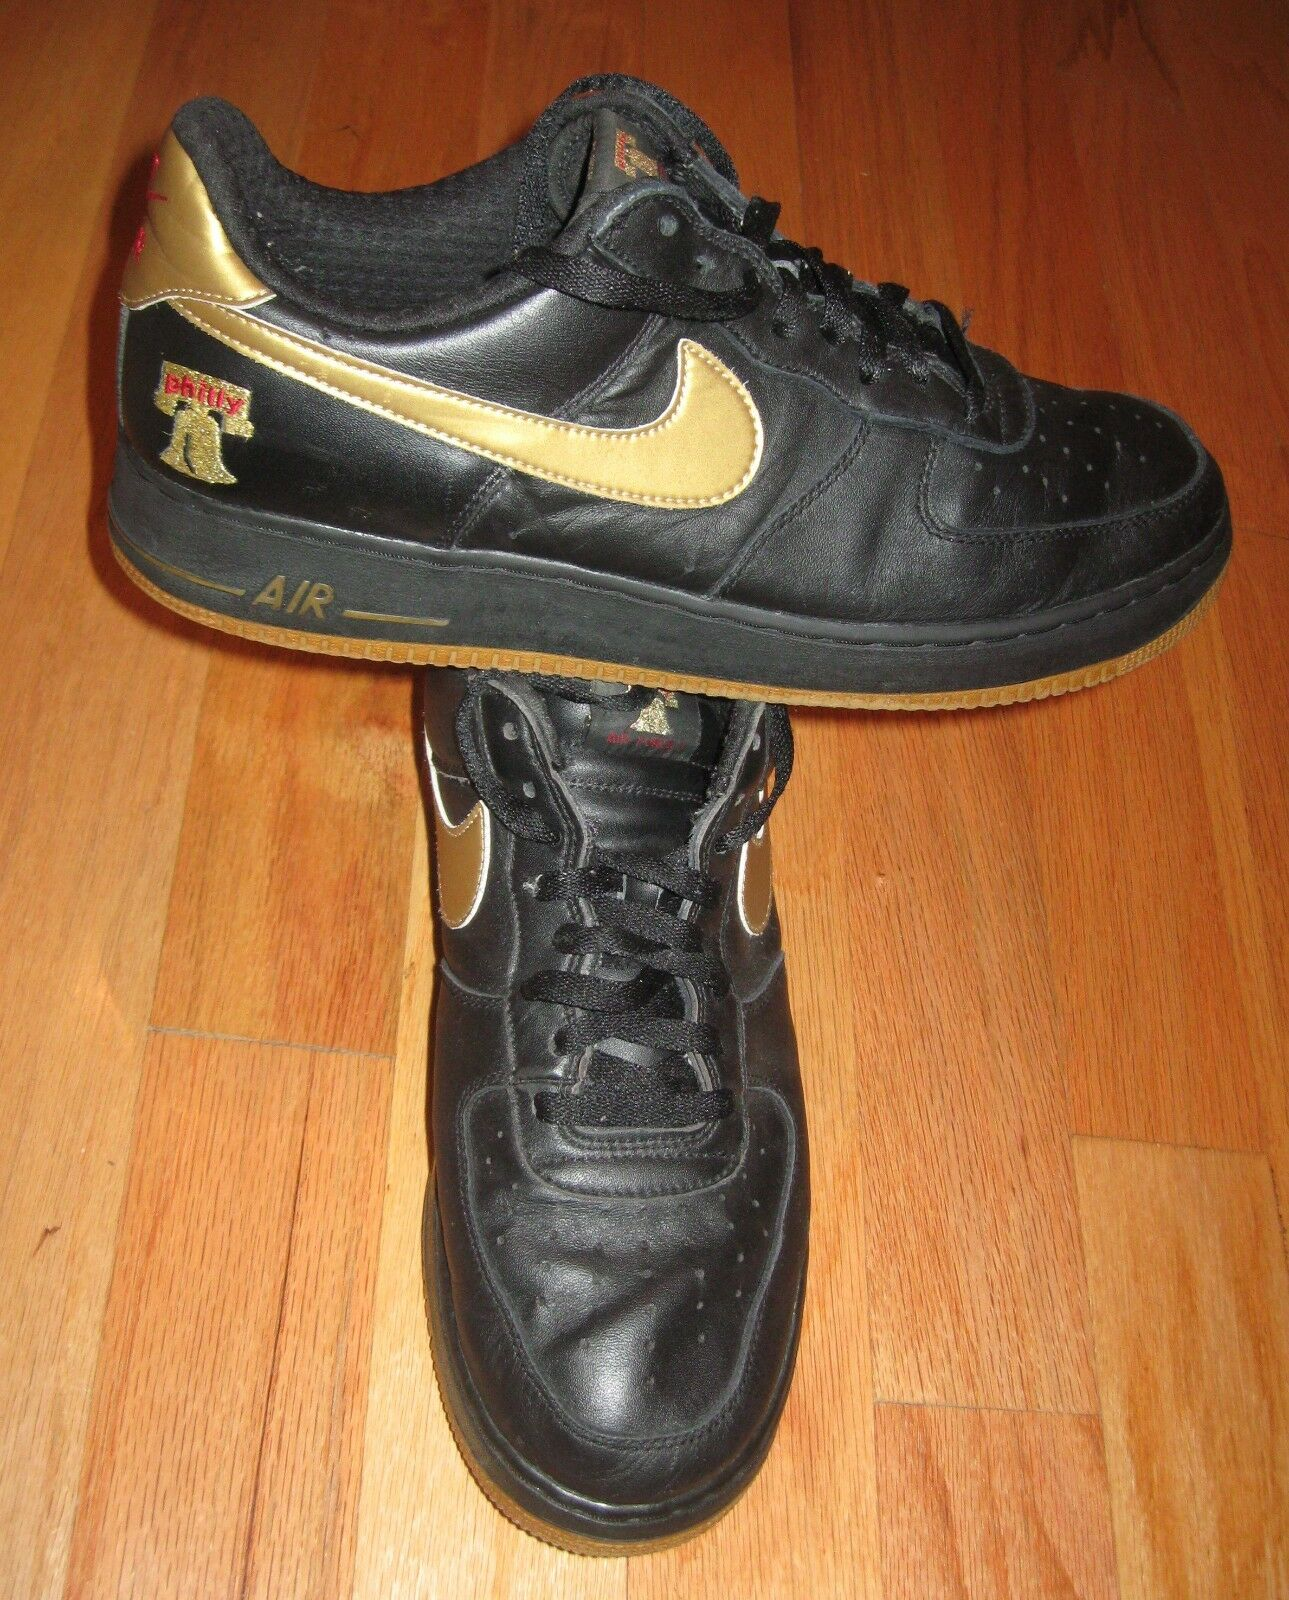 NIKE AIR FORCE 1 PREMIUM PHILLY 309096-071 MENS LEATHER BASKETBALL SHOES SIZE 14